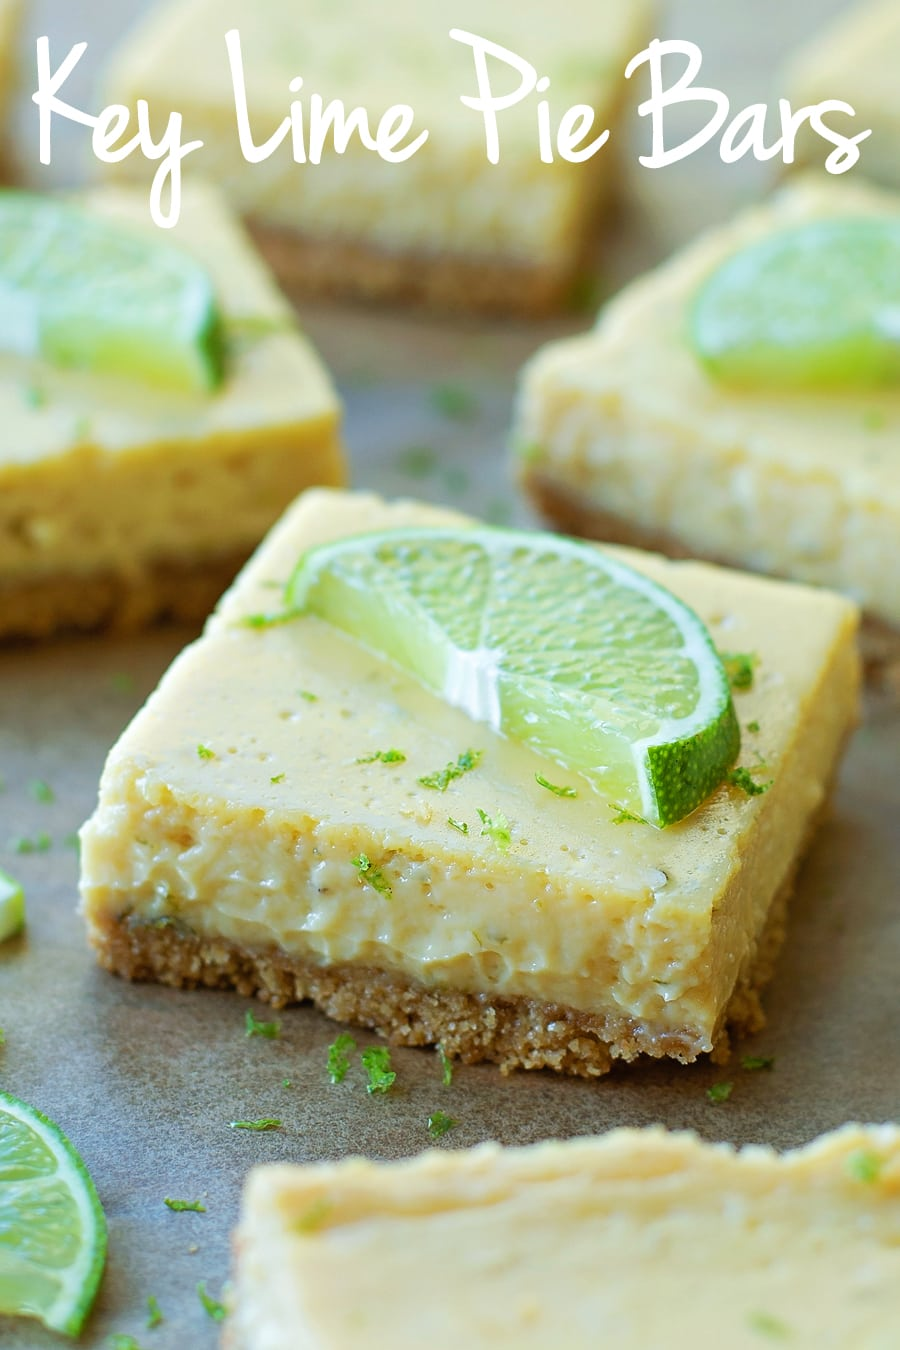 Key Lime Pie Bar squares topped with lime slices